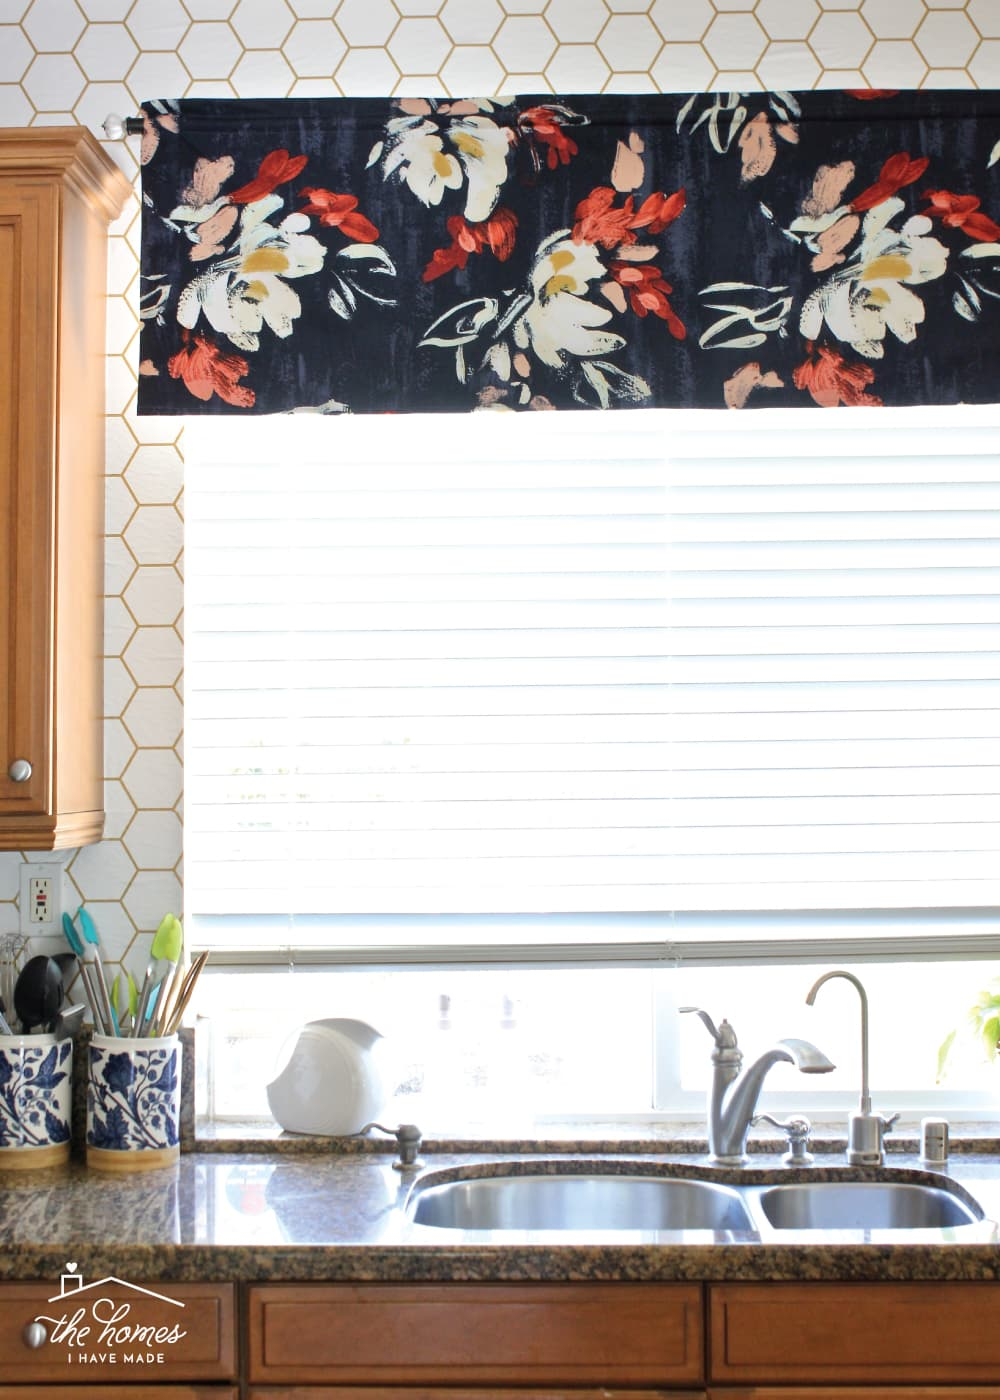 Learn how to sew a simple window valance to dress up any window on a budget!